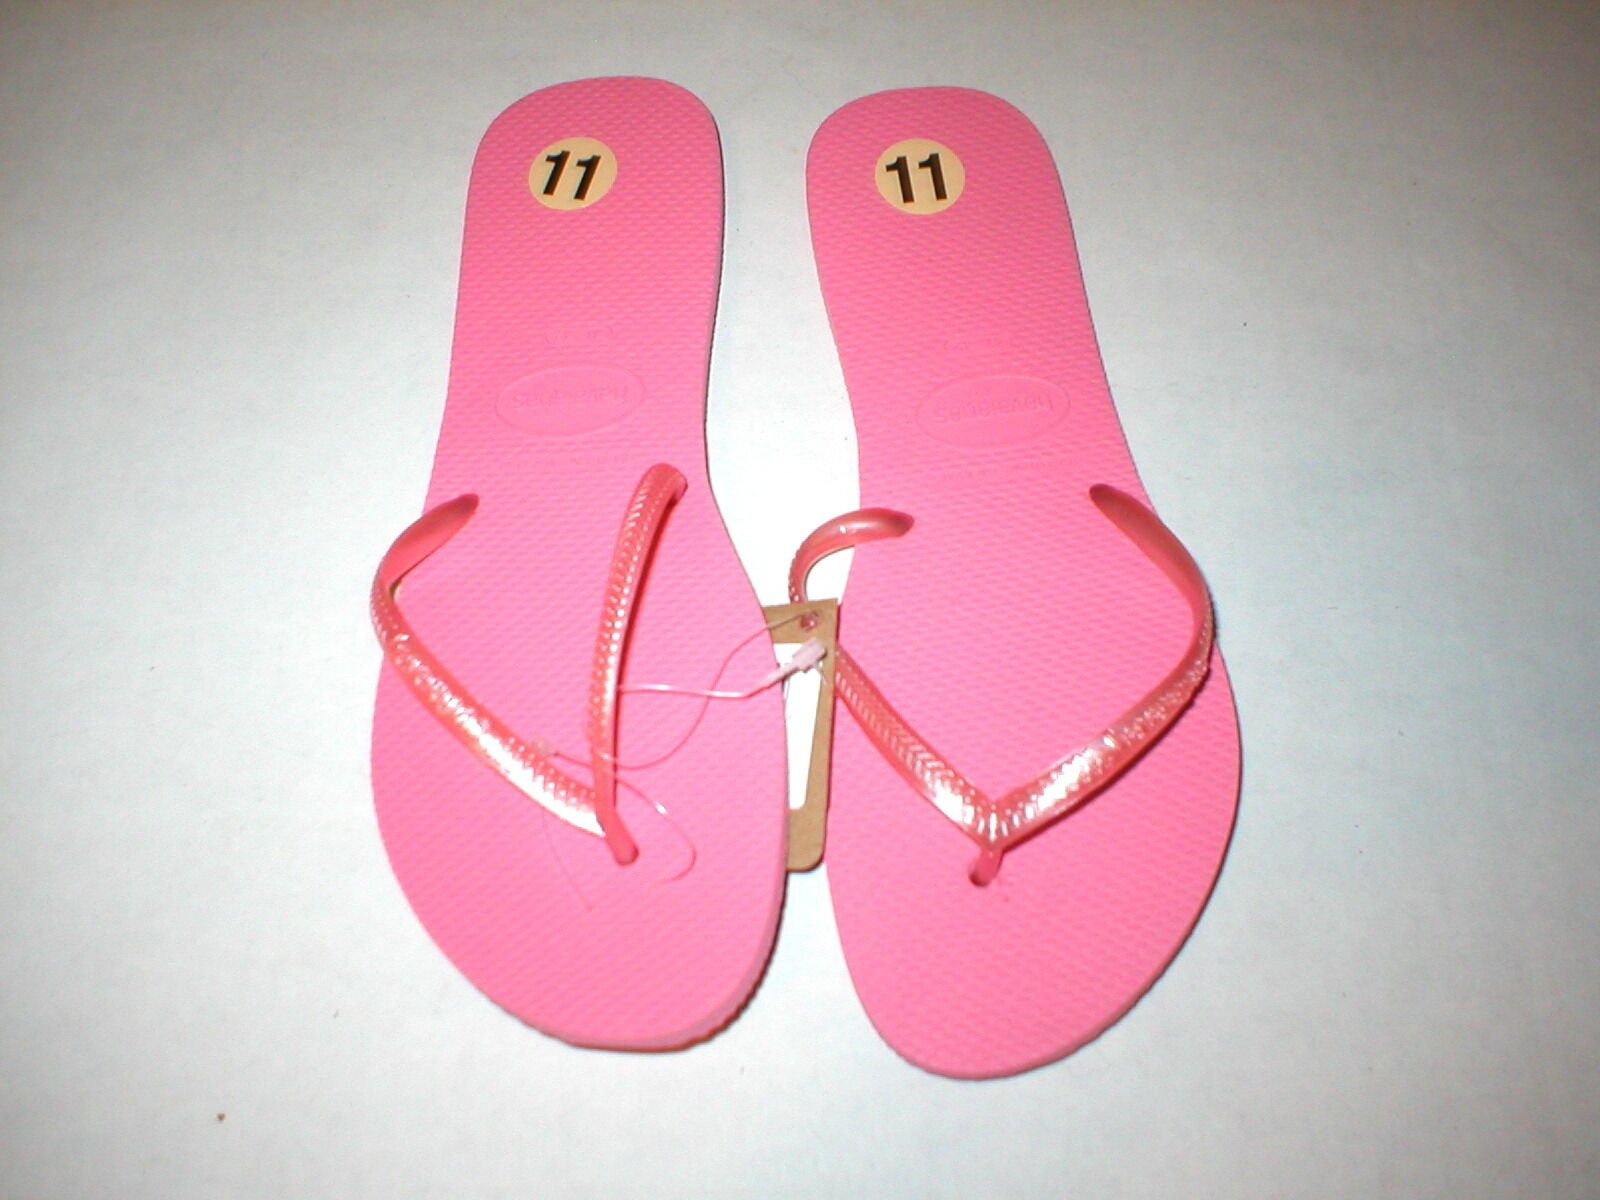 New Womens Authentic Pink NWT Havaianas Flip Flops Pink Authentic Shoes 11 12 Logo Sandals 1830c5